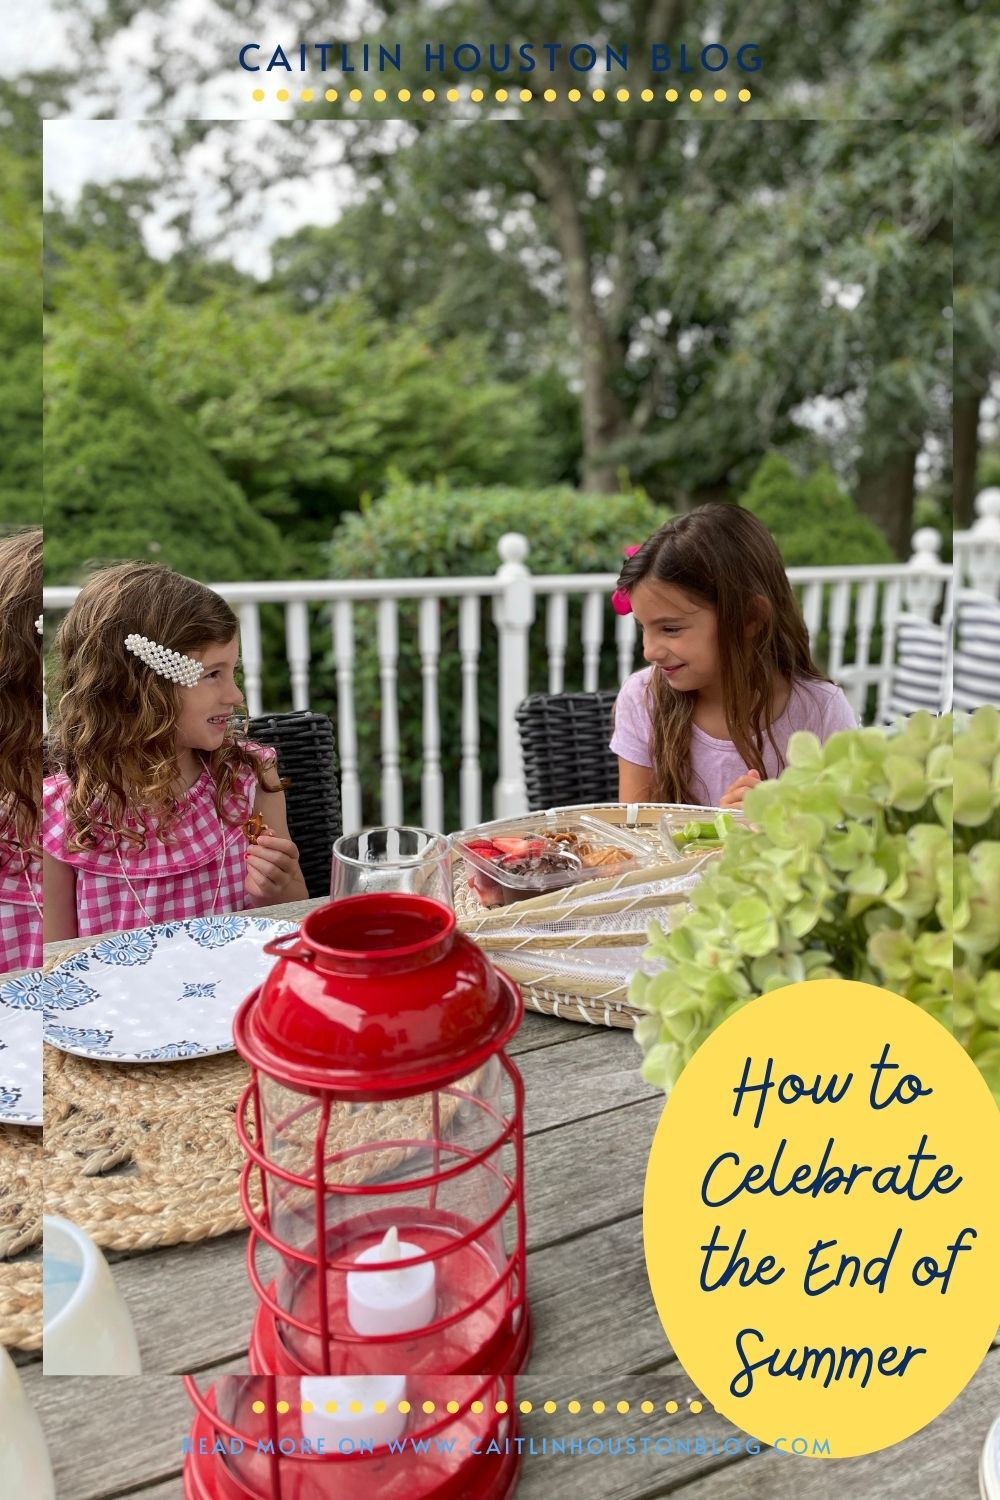 4 fun ways to celebrate the end of summer